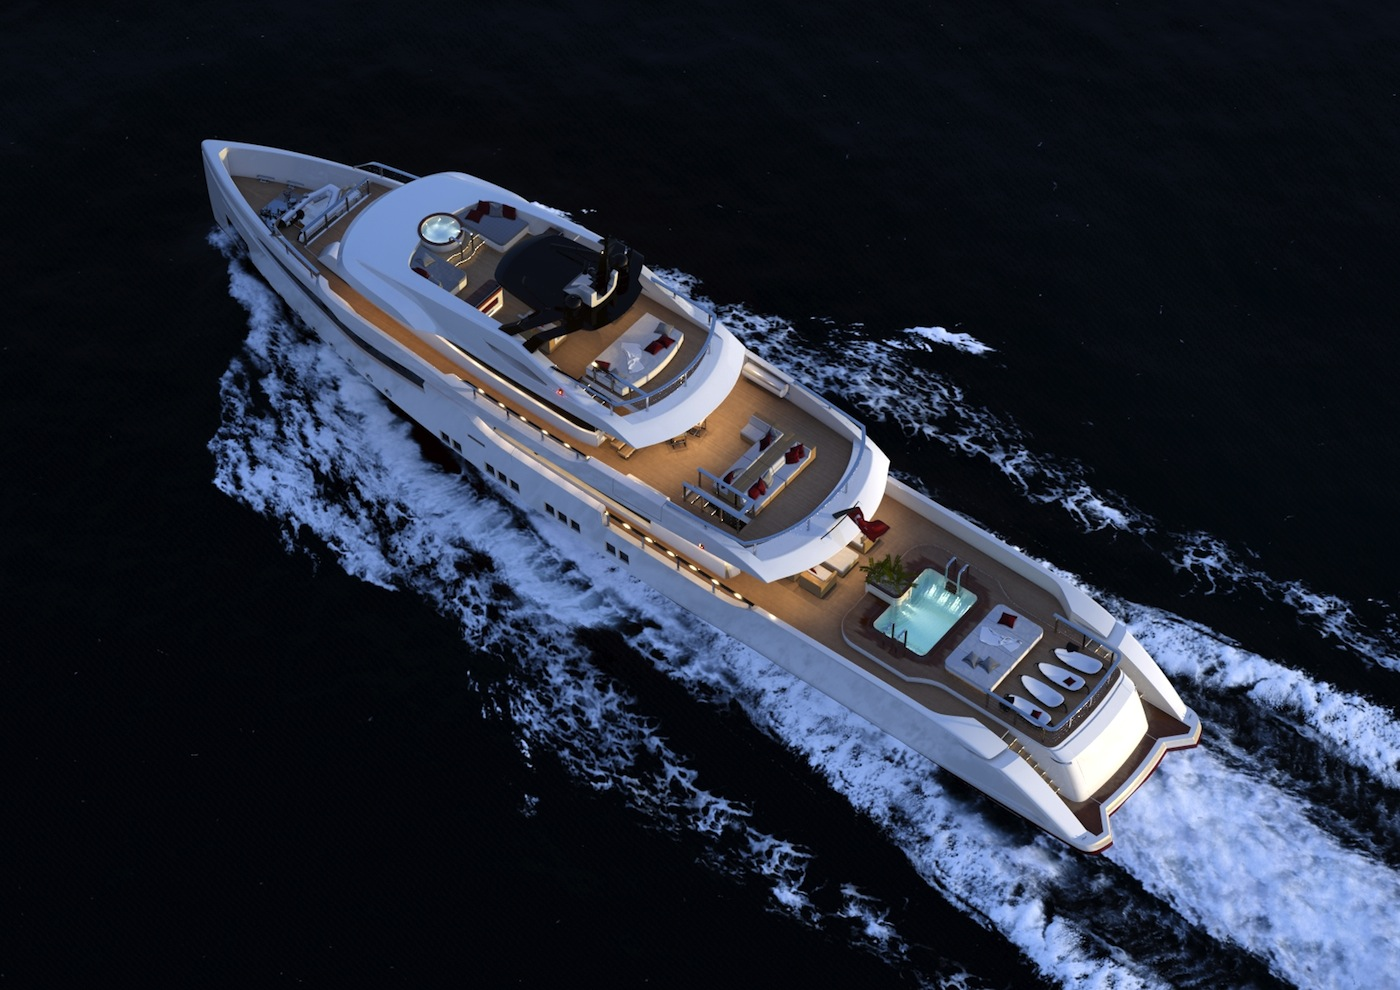 Luxury superyacht keyla interior by hot lab luxury yacht charter - Rmk 5000 Leisure Yacht Concept View From Above